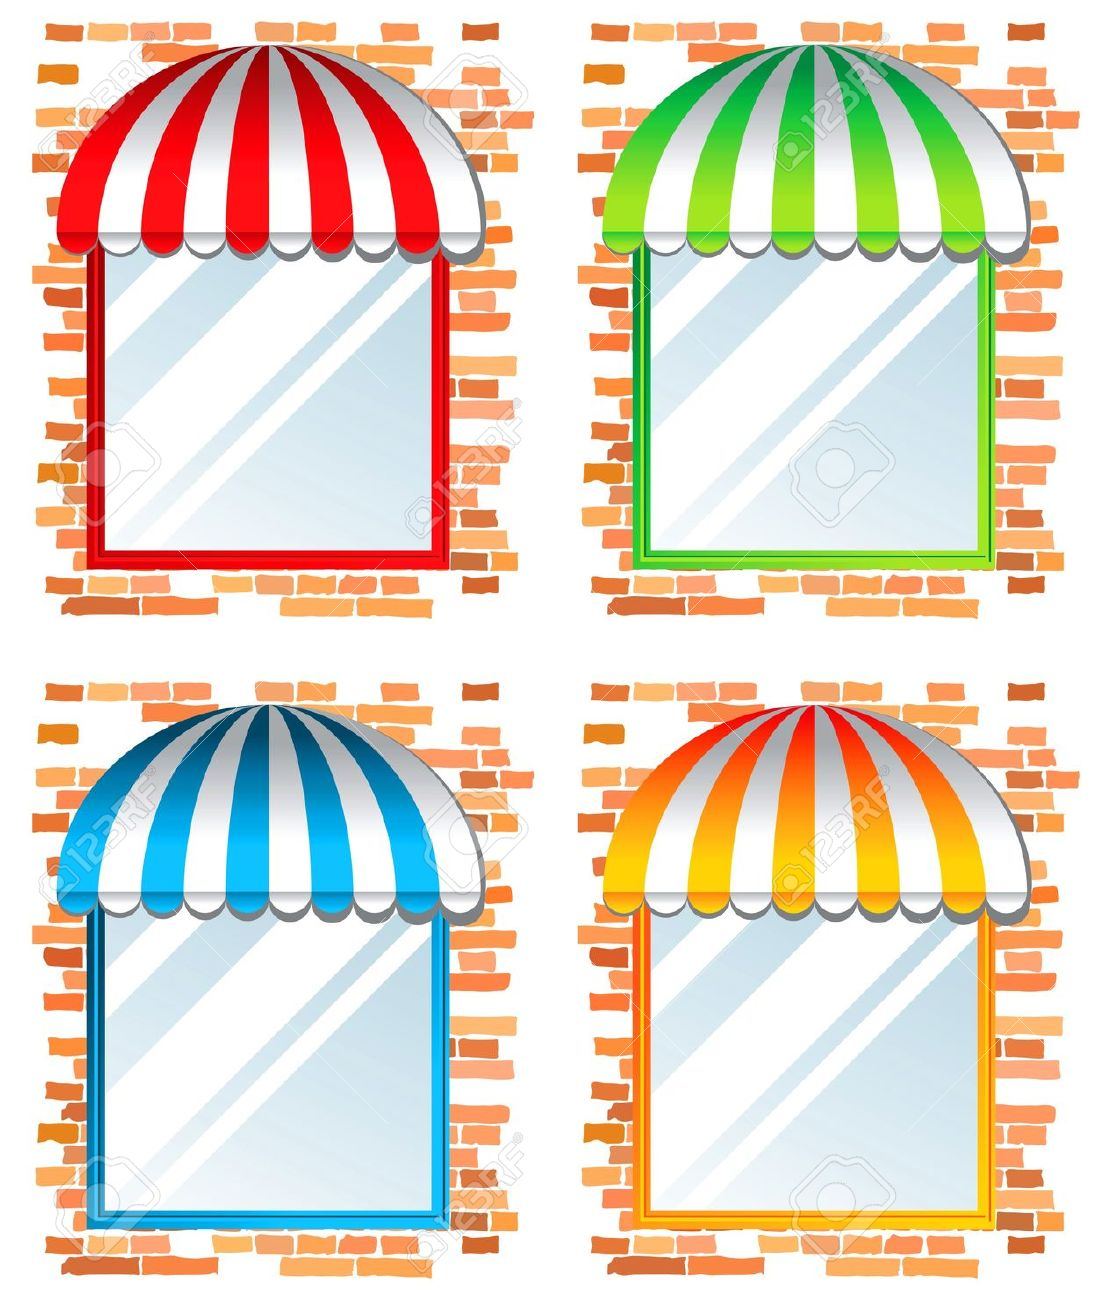 Clipart Window - All About Clipart